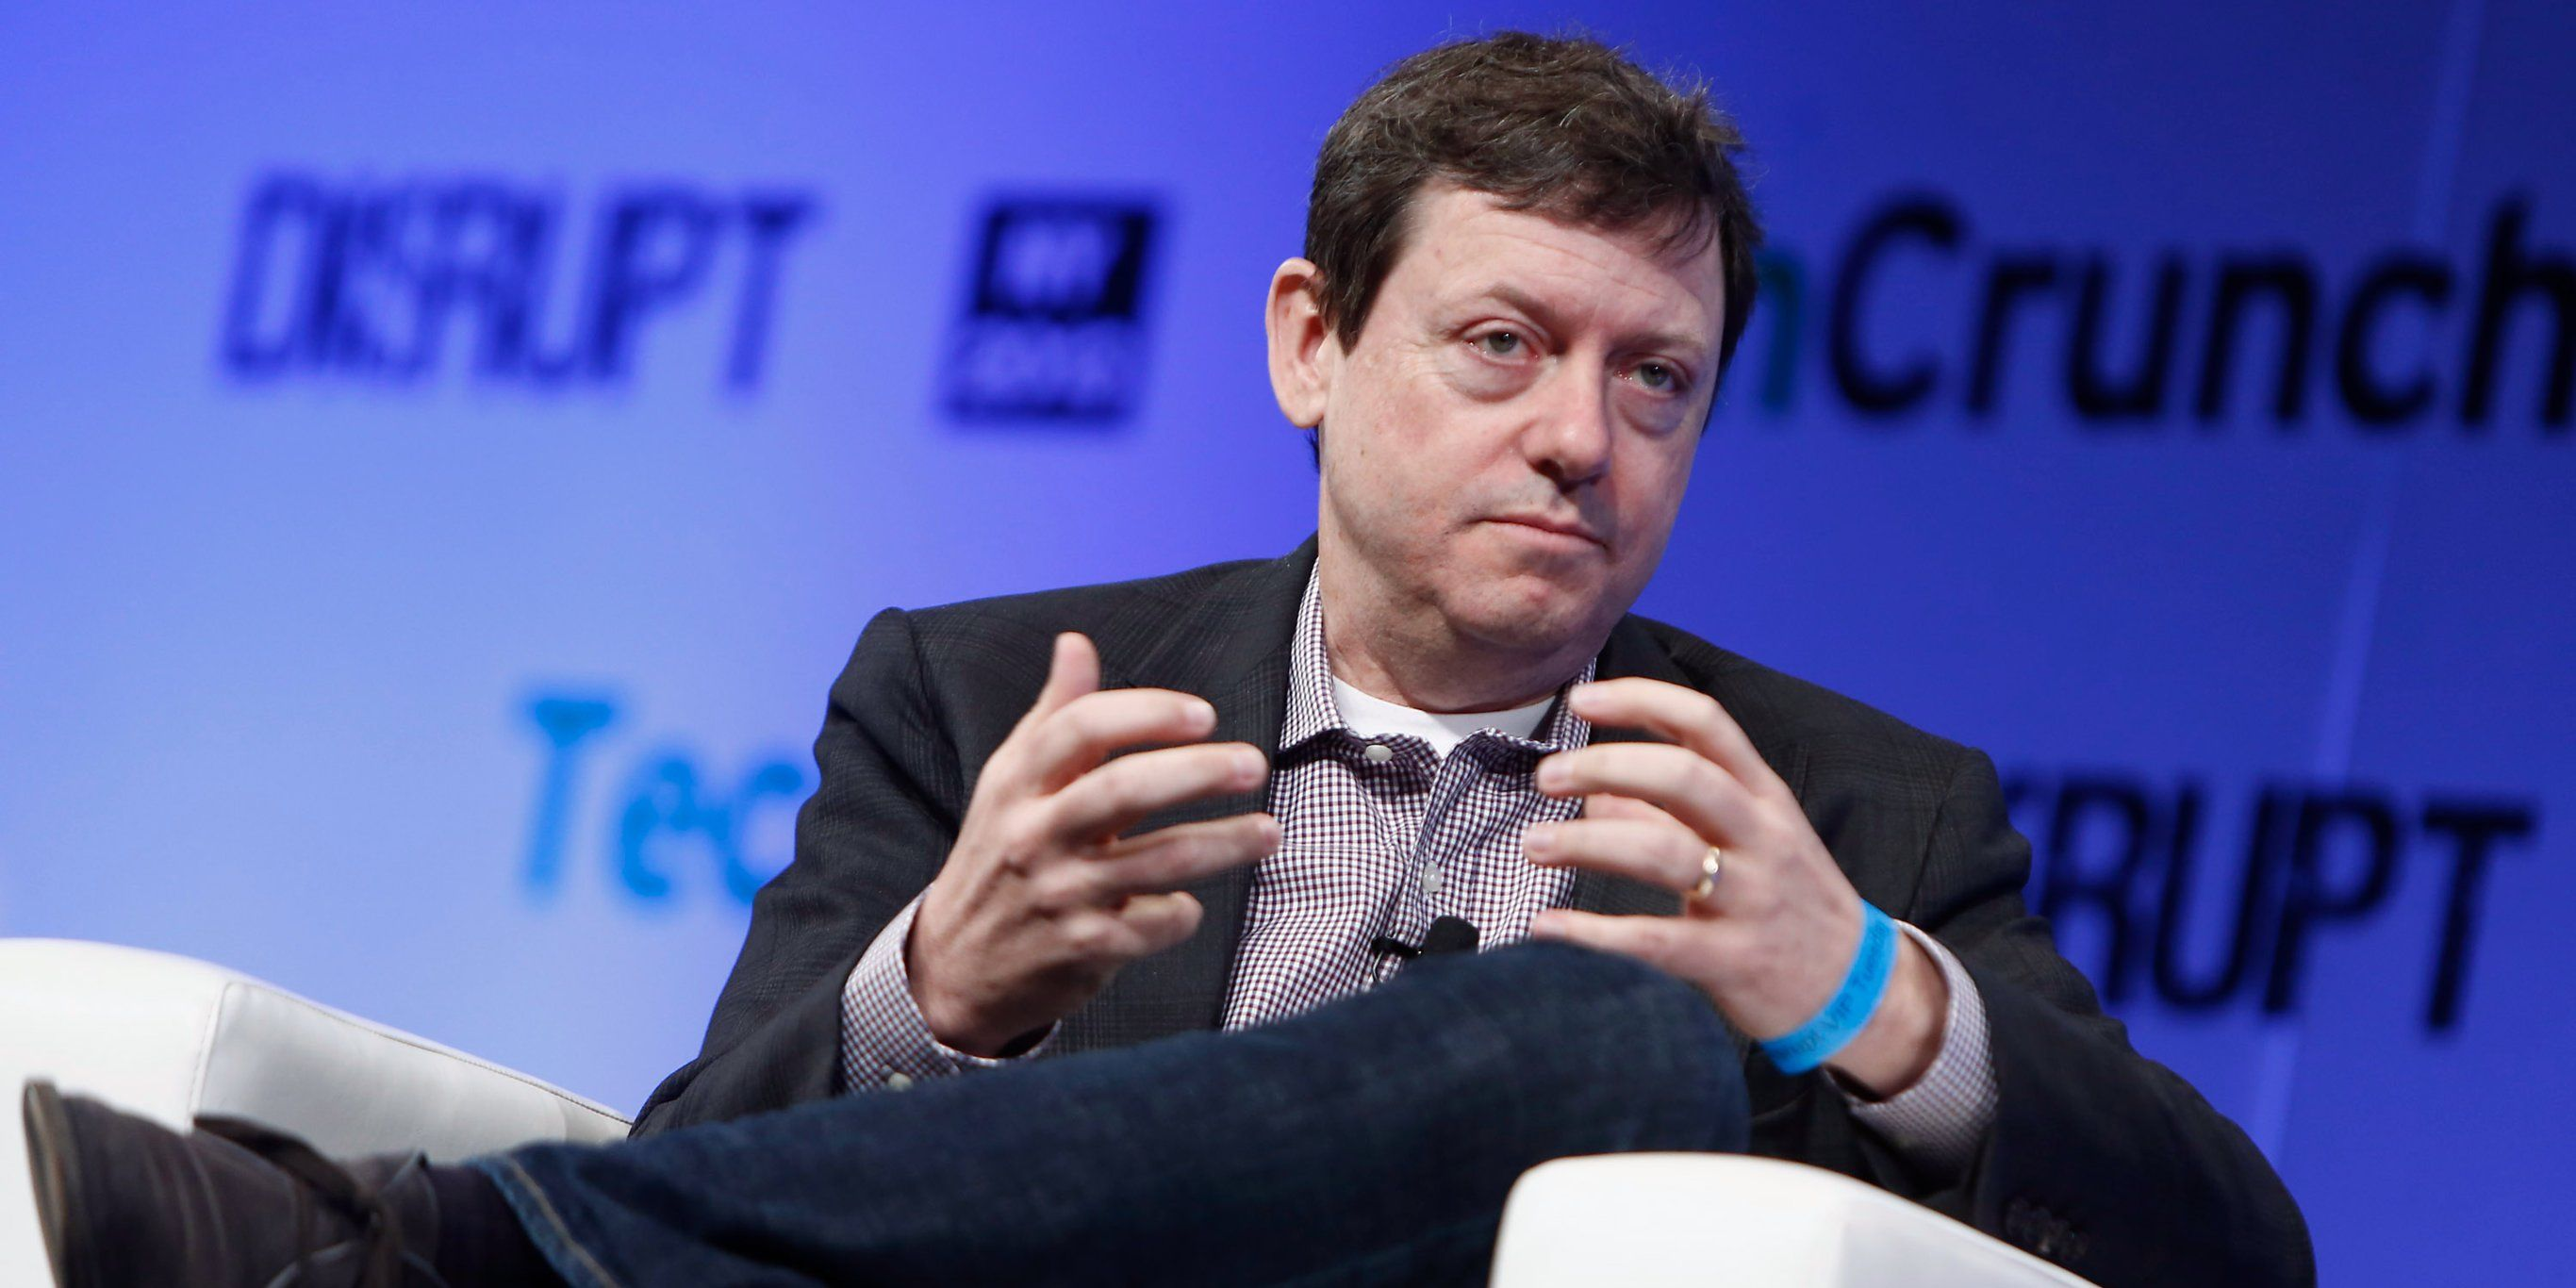 Fred wilson investment pace with images investing